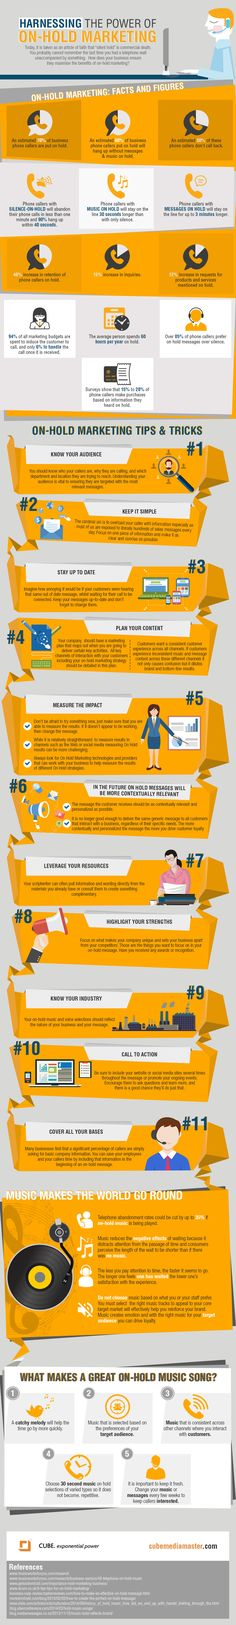 Harnessing the Power of On-hold Marketing #infographic #Business #CustomerService #Marketing